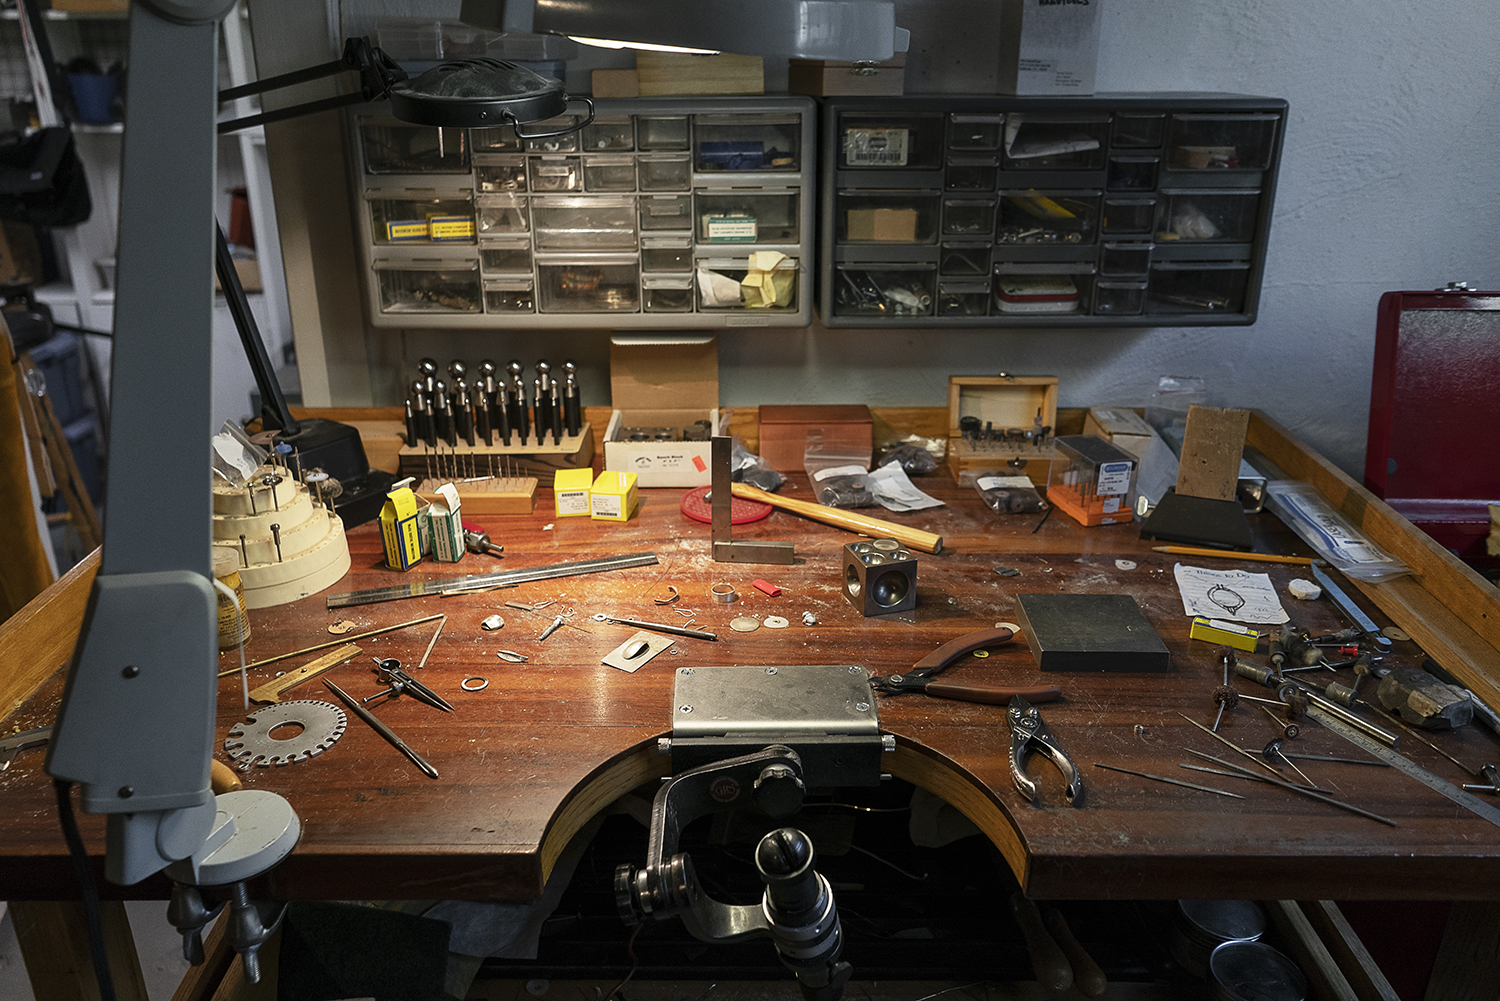 Flint, MI - Tuesday, May 8, 2018: Various pieces of unfinished jewelry and tools rest on a bench in the studio of metalsmith Robert McAdow.Tim Galloway for FlintSide